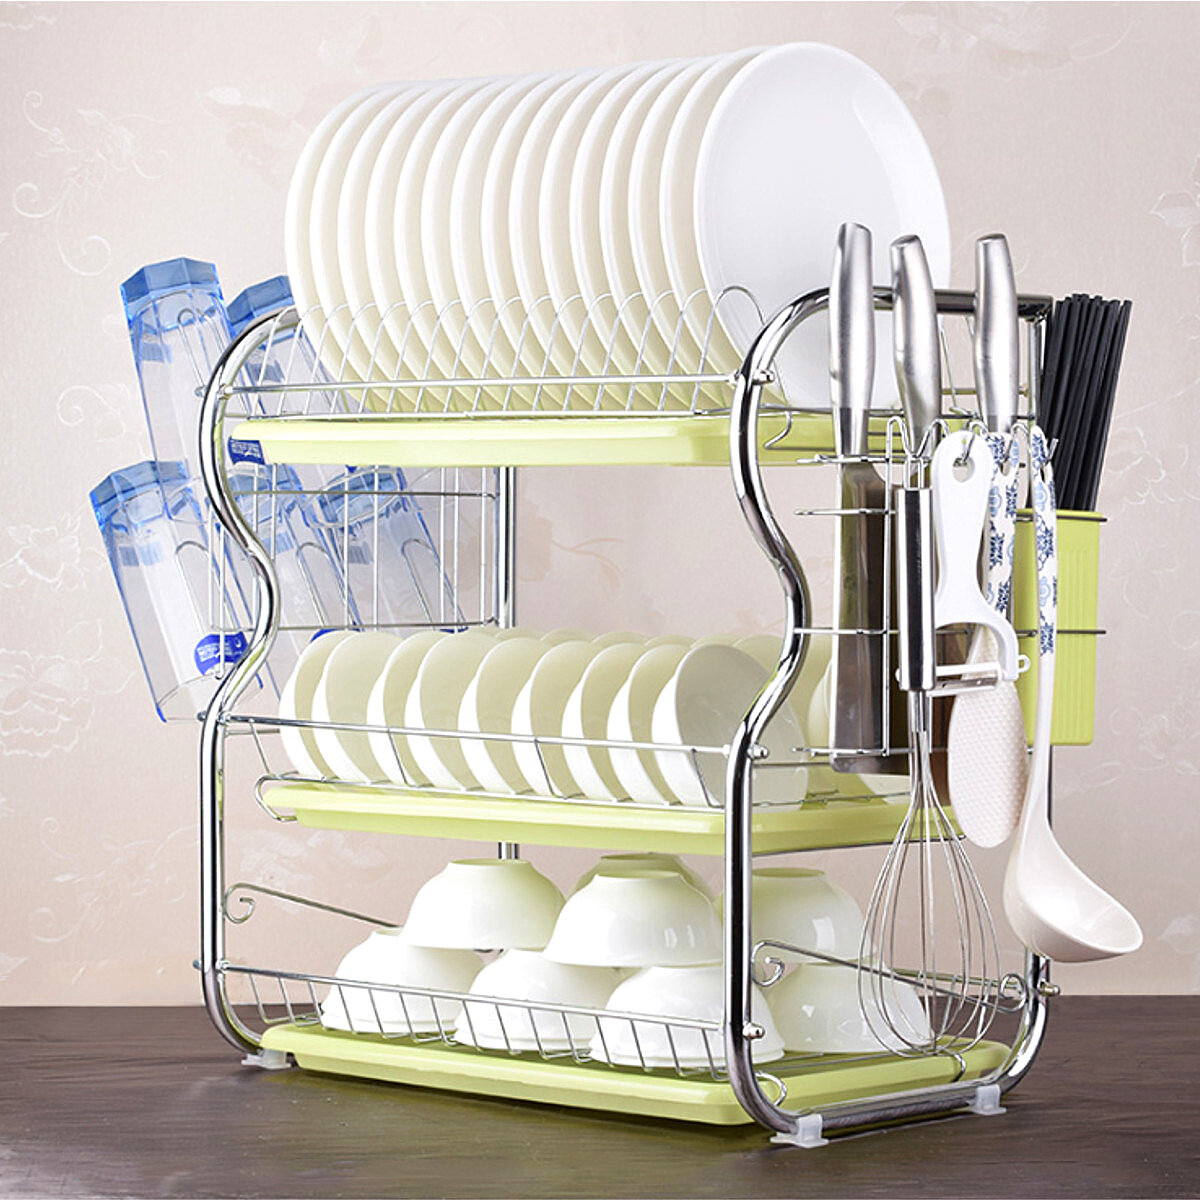 3 Tier Stainless Steel Kitchen Sink Dish Rack Cup Drying Drainer Tray Cutlery Holder Counter Organizer Stor